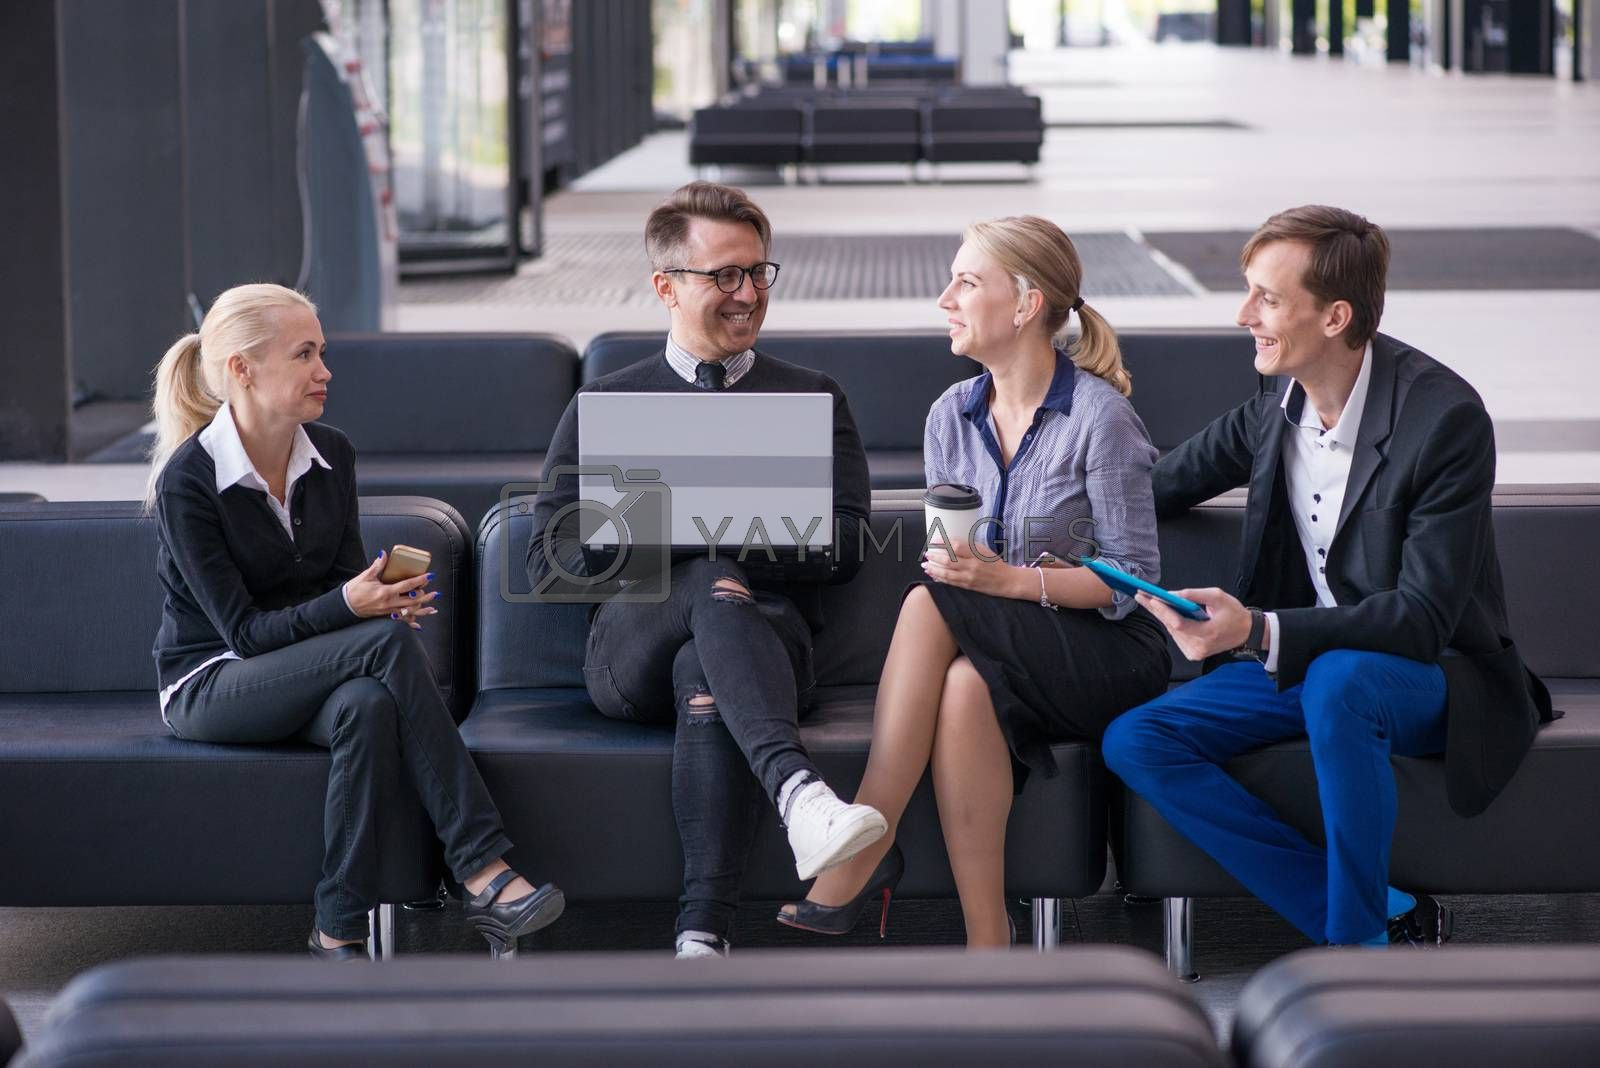 Portrait of happy business people talking at break in business center lobby sitting together at sofa